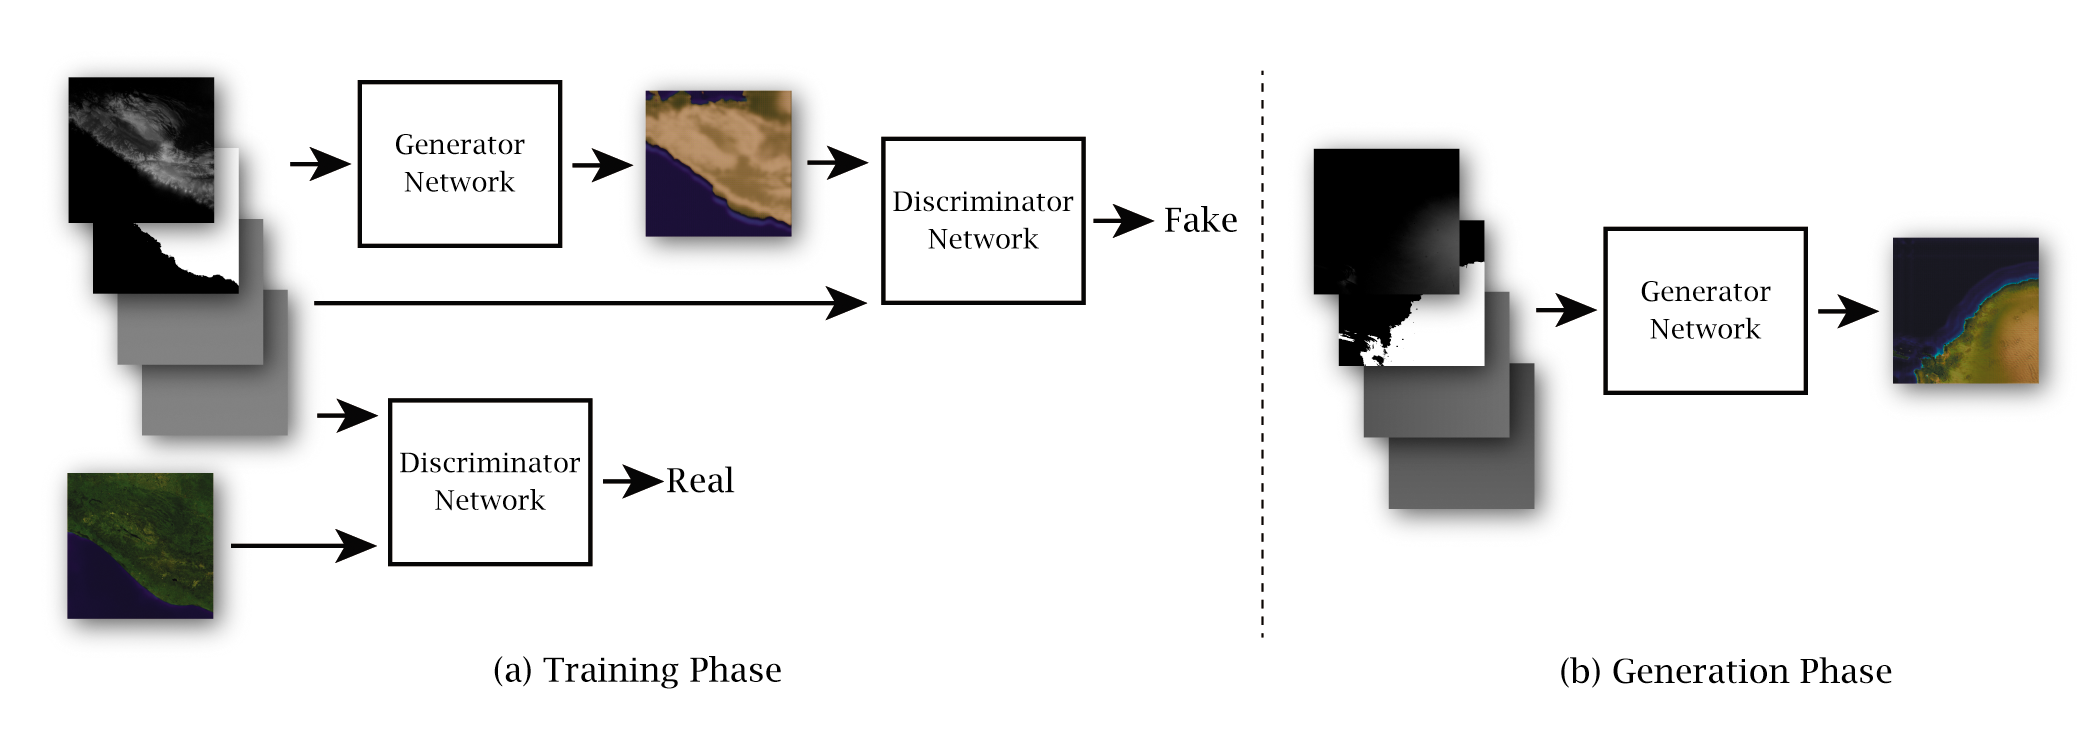 The conditional generative adversarial nets (Conditional GAN) model and data examples used in the project. Earth data was used in the training phase, while Mars data was used in the generation phase. The generator was trained to produce color images according to topographical data in hopes of convincing the discriminator which was trained to be knowledgeable about the authenticity of Earth imagery. The two networks were trained in turn so that they can compete and grow together. The datasets consist of global data of Earth and Mars sliced into thousands of tiles. To facilitate training and generation, land-ocean mask, longitude, and latitude data were also used.